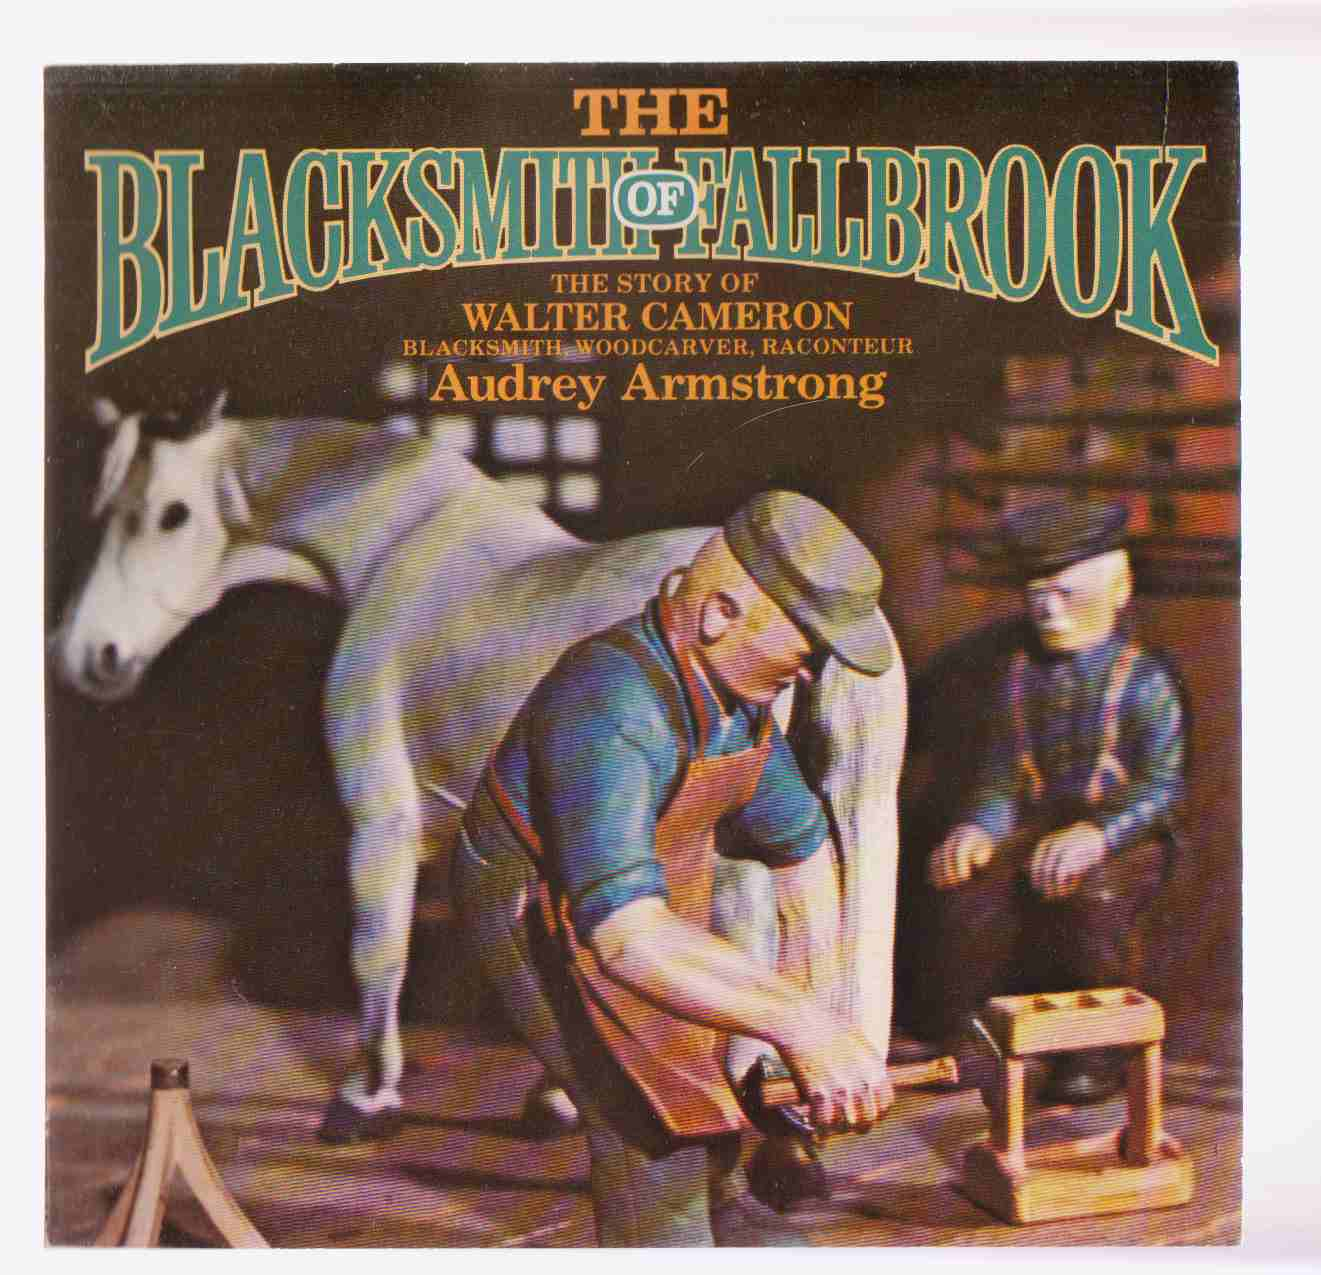 Image for The Blacksmith of Fallbrook: the Story of Walter Cameron, Blacksmith, Woodcarver, Raconteur